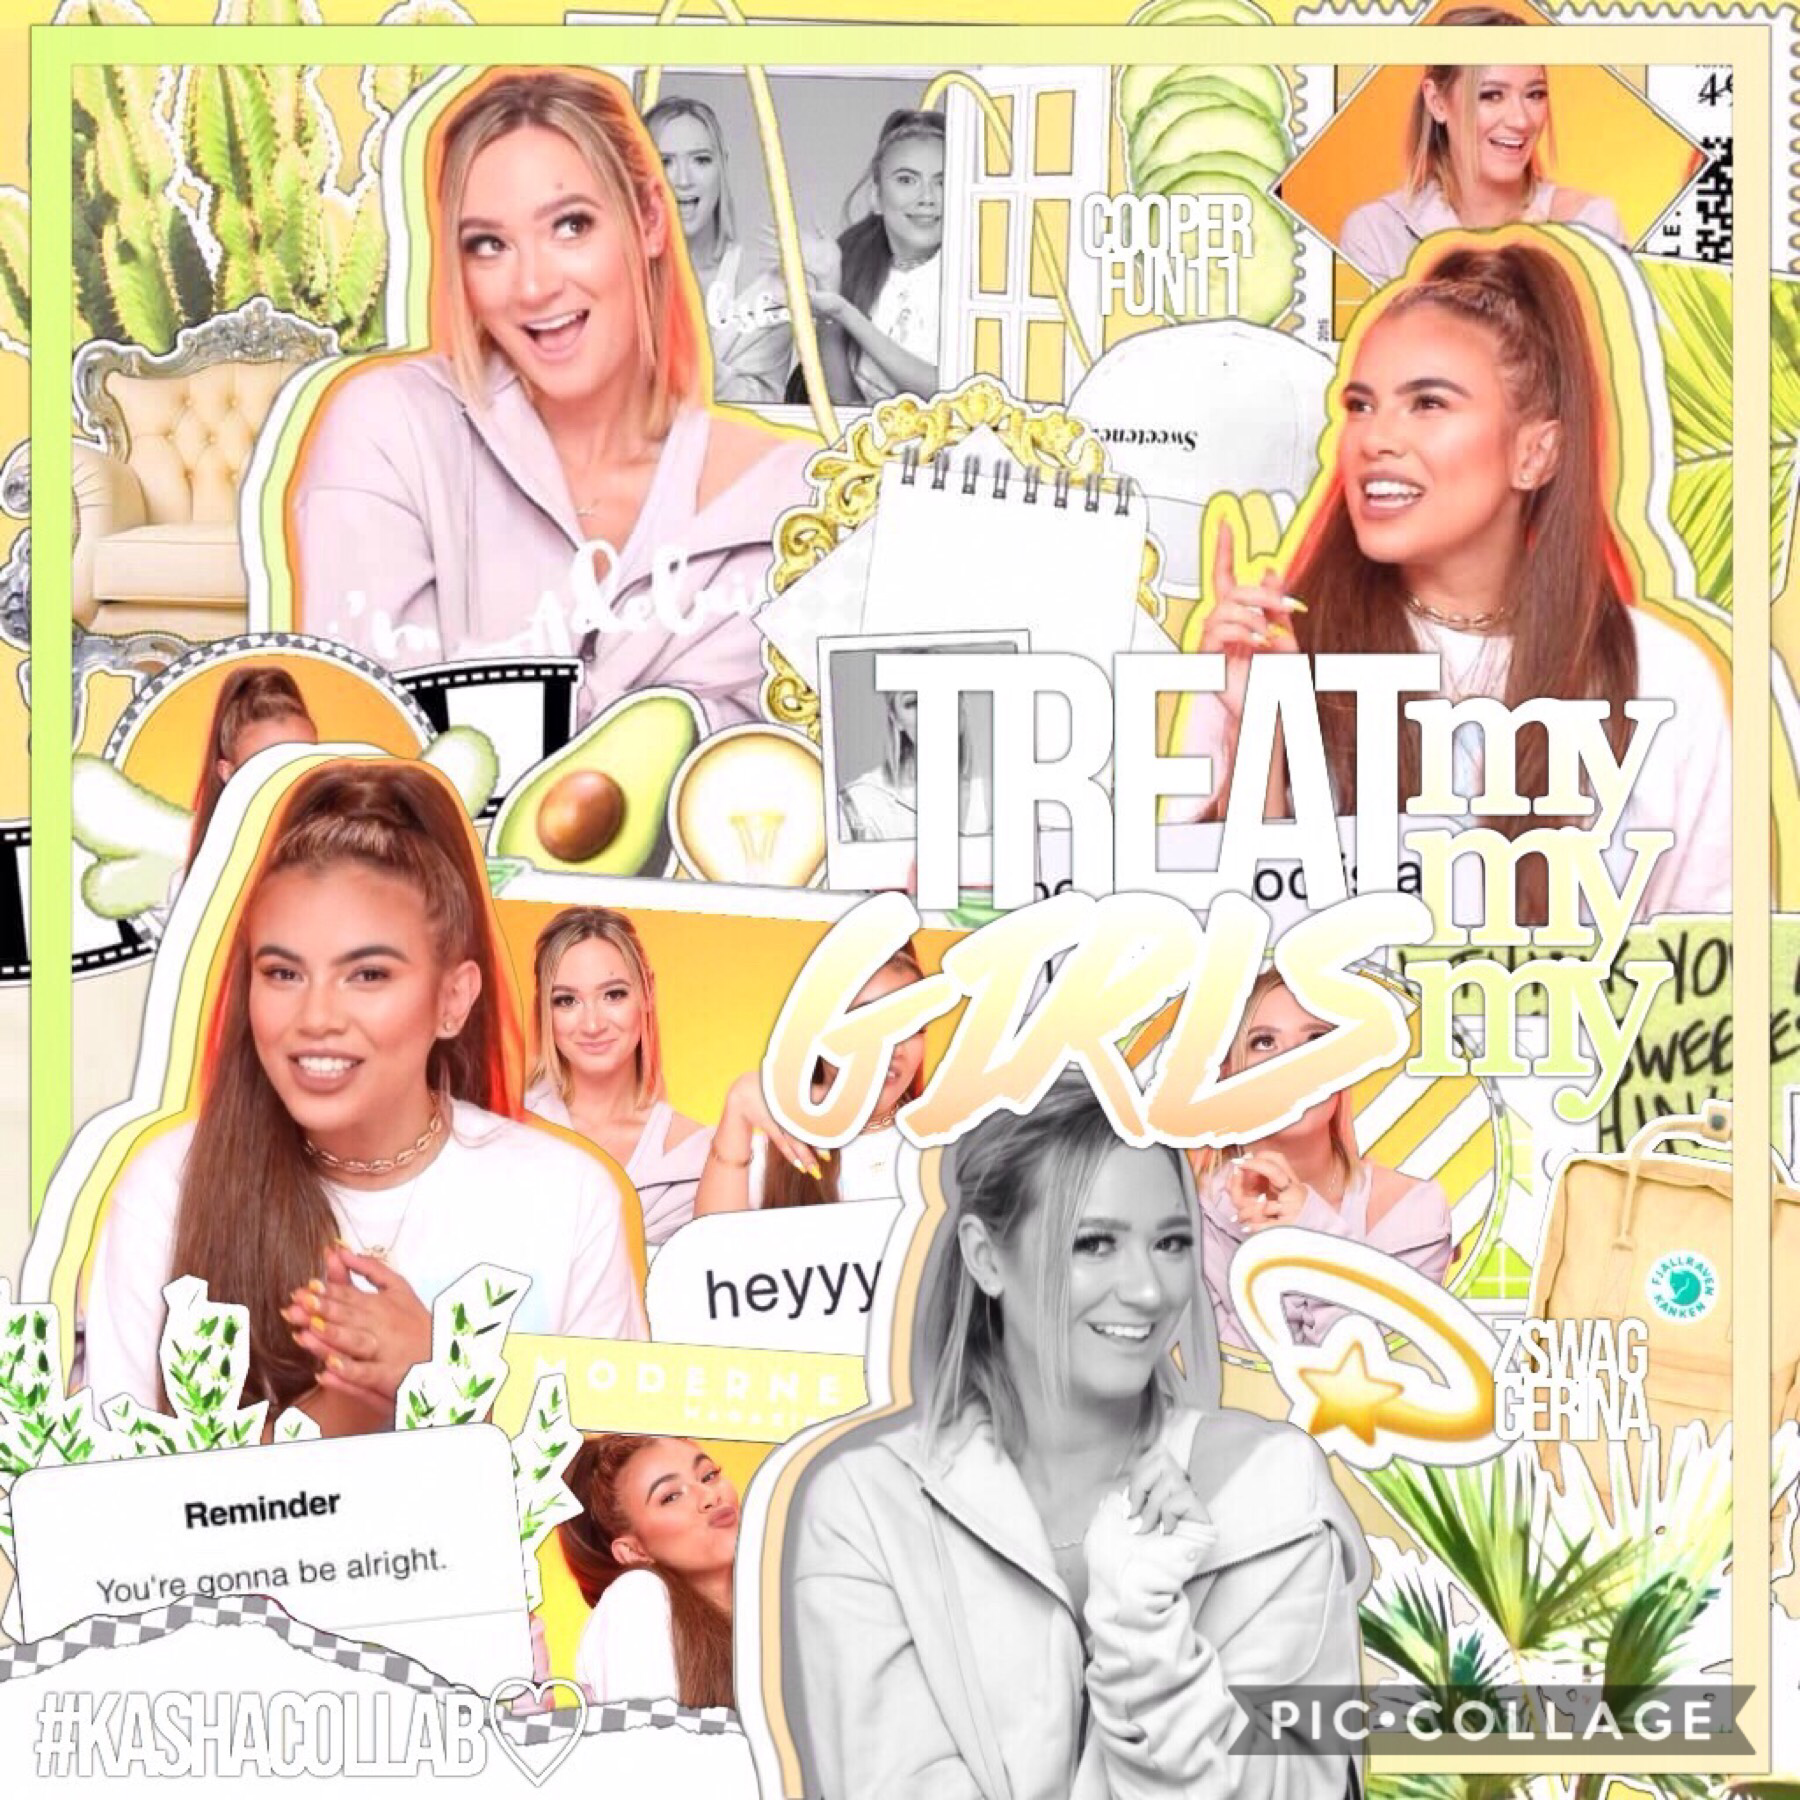 best friends collab with my one and only @cooperfun11 ☺️💛 also I'm on spring break finally ! 🥑 it means that not only I'll be more active but I'll also post more :) and for sure collab more with this baby bean 💗👯 #clickbaitchicks